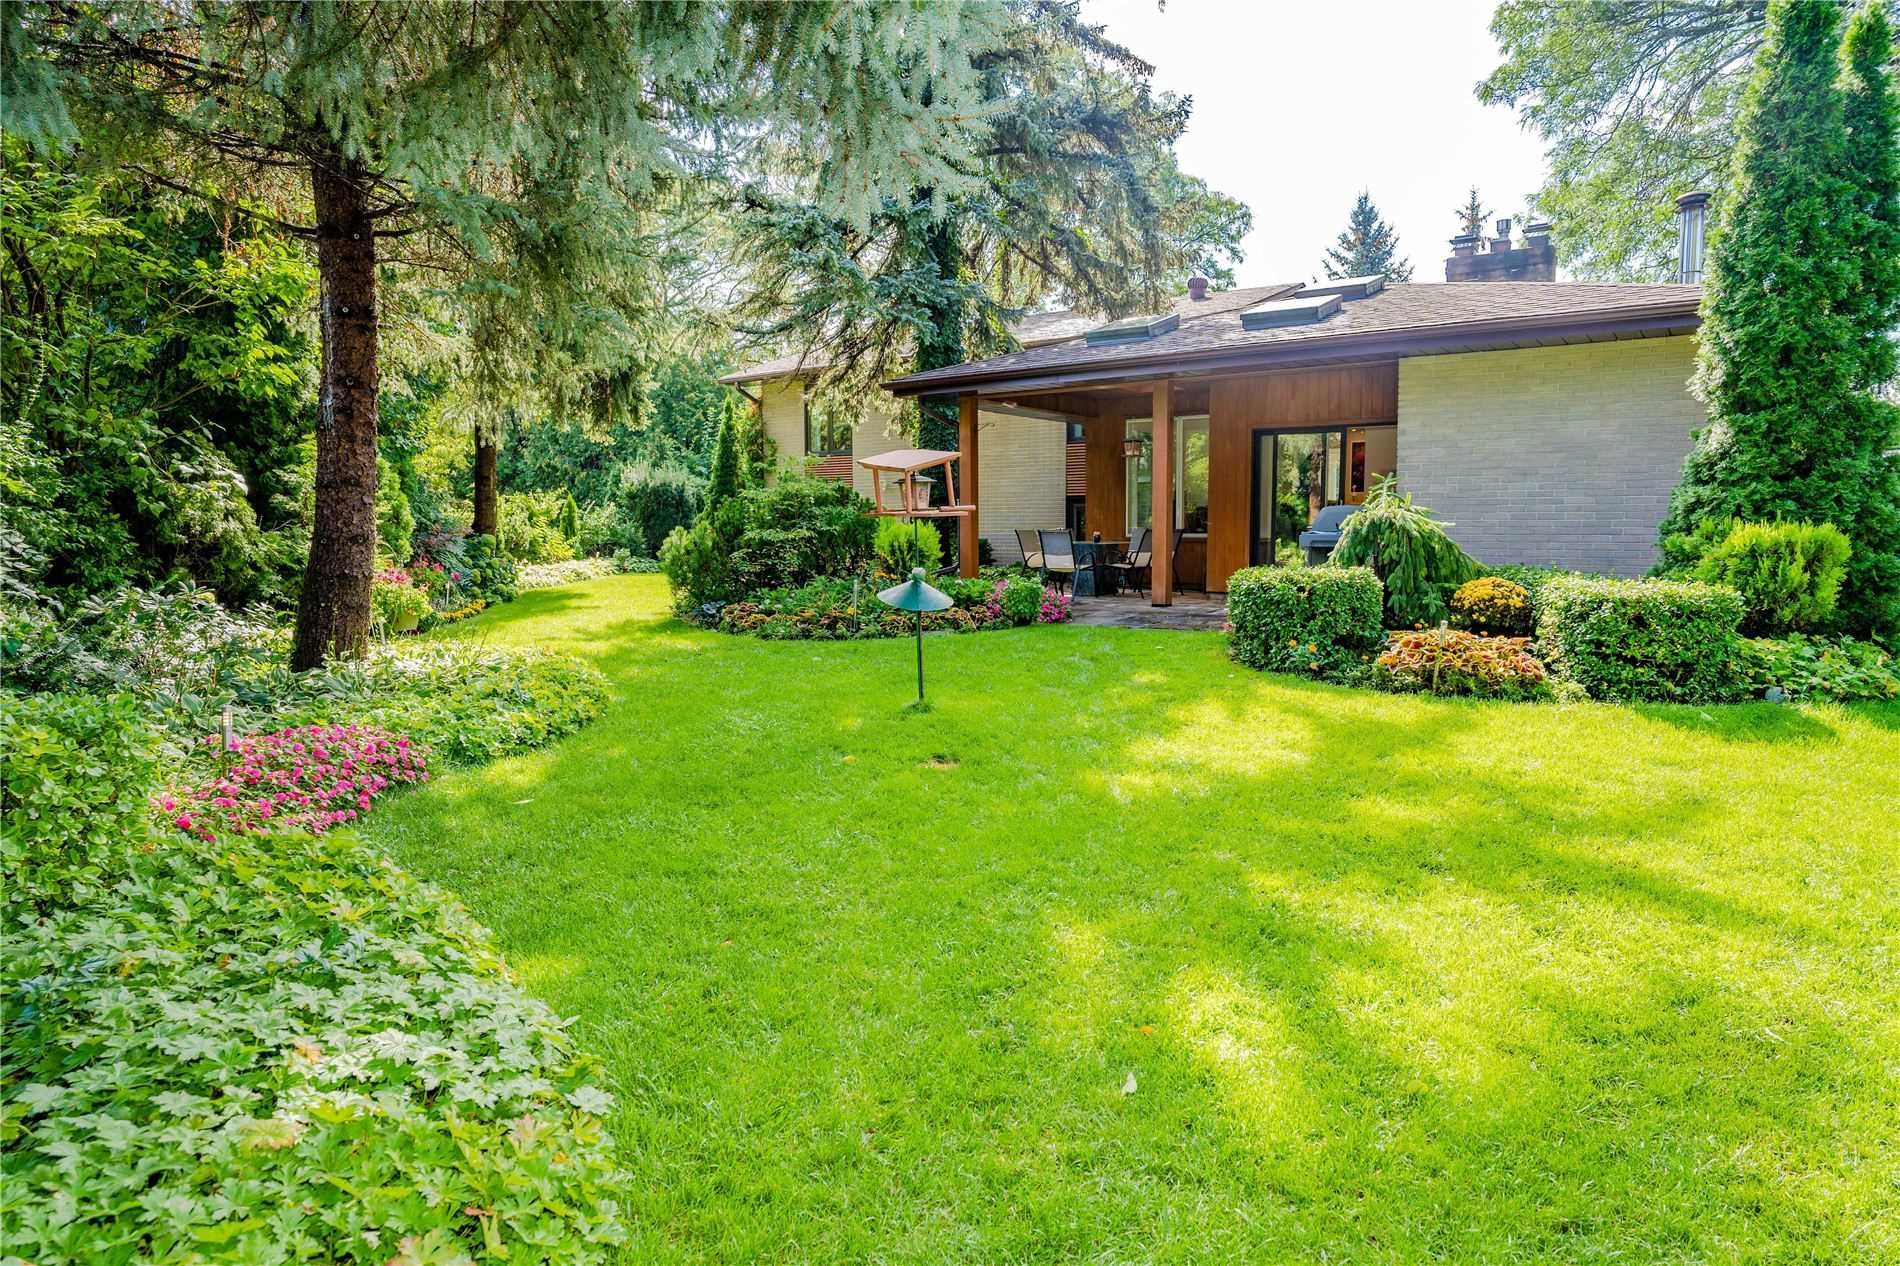 772 Lawrence Ave E - C5365368 - $3,798,888